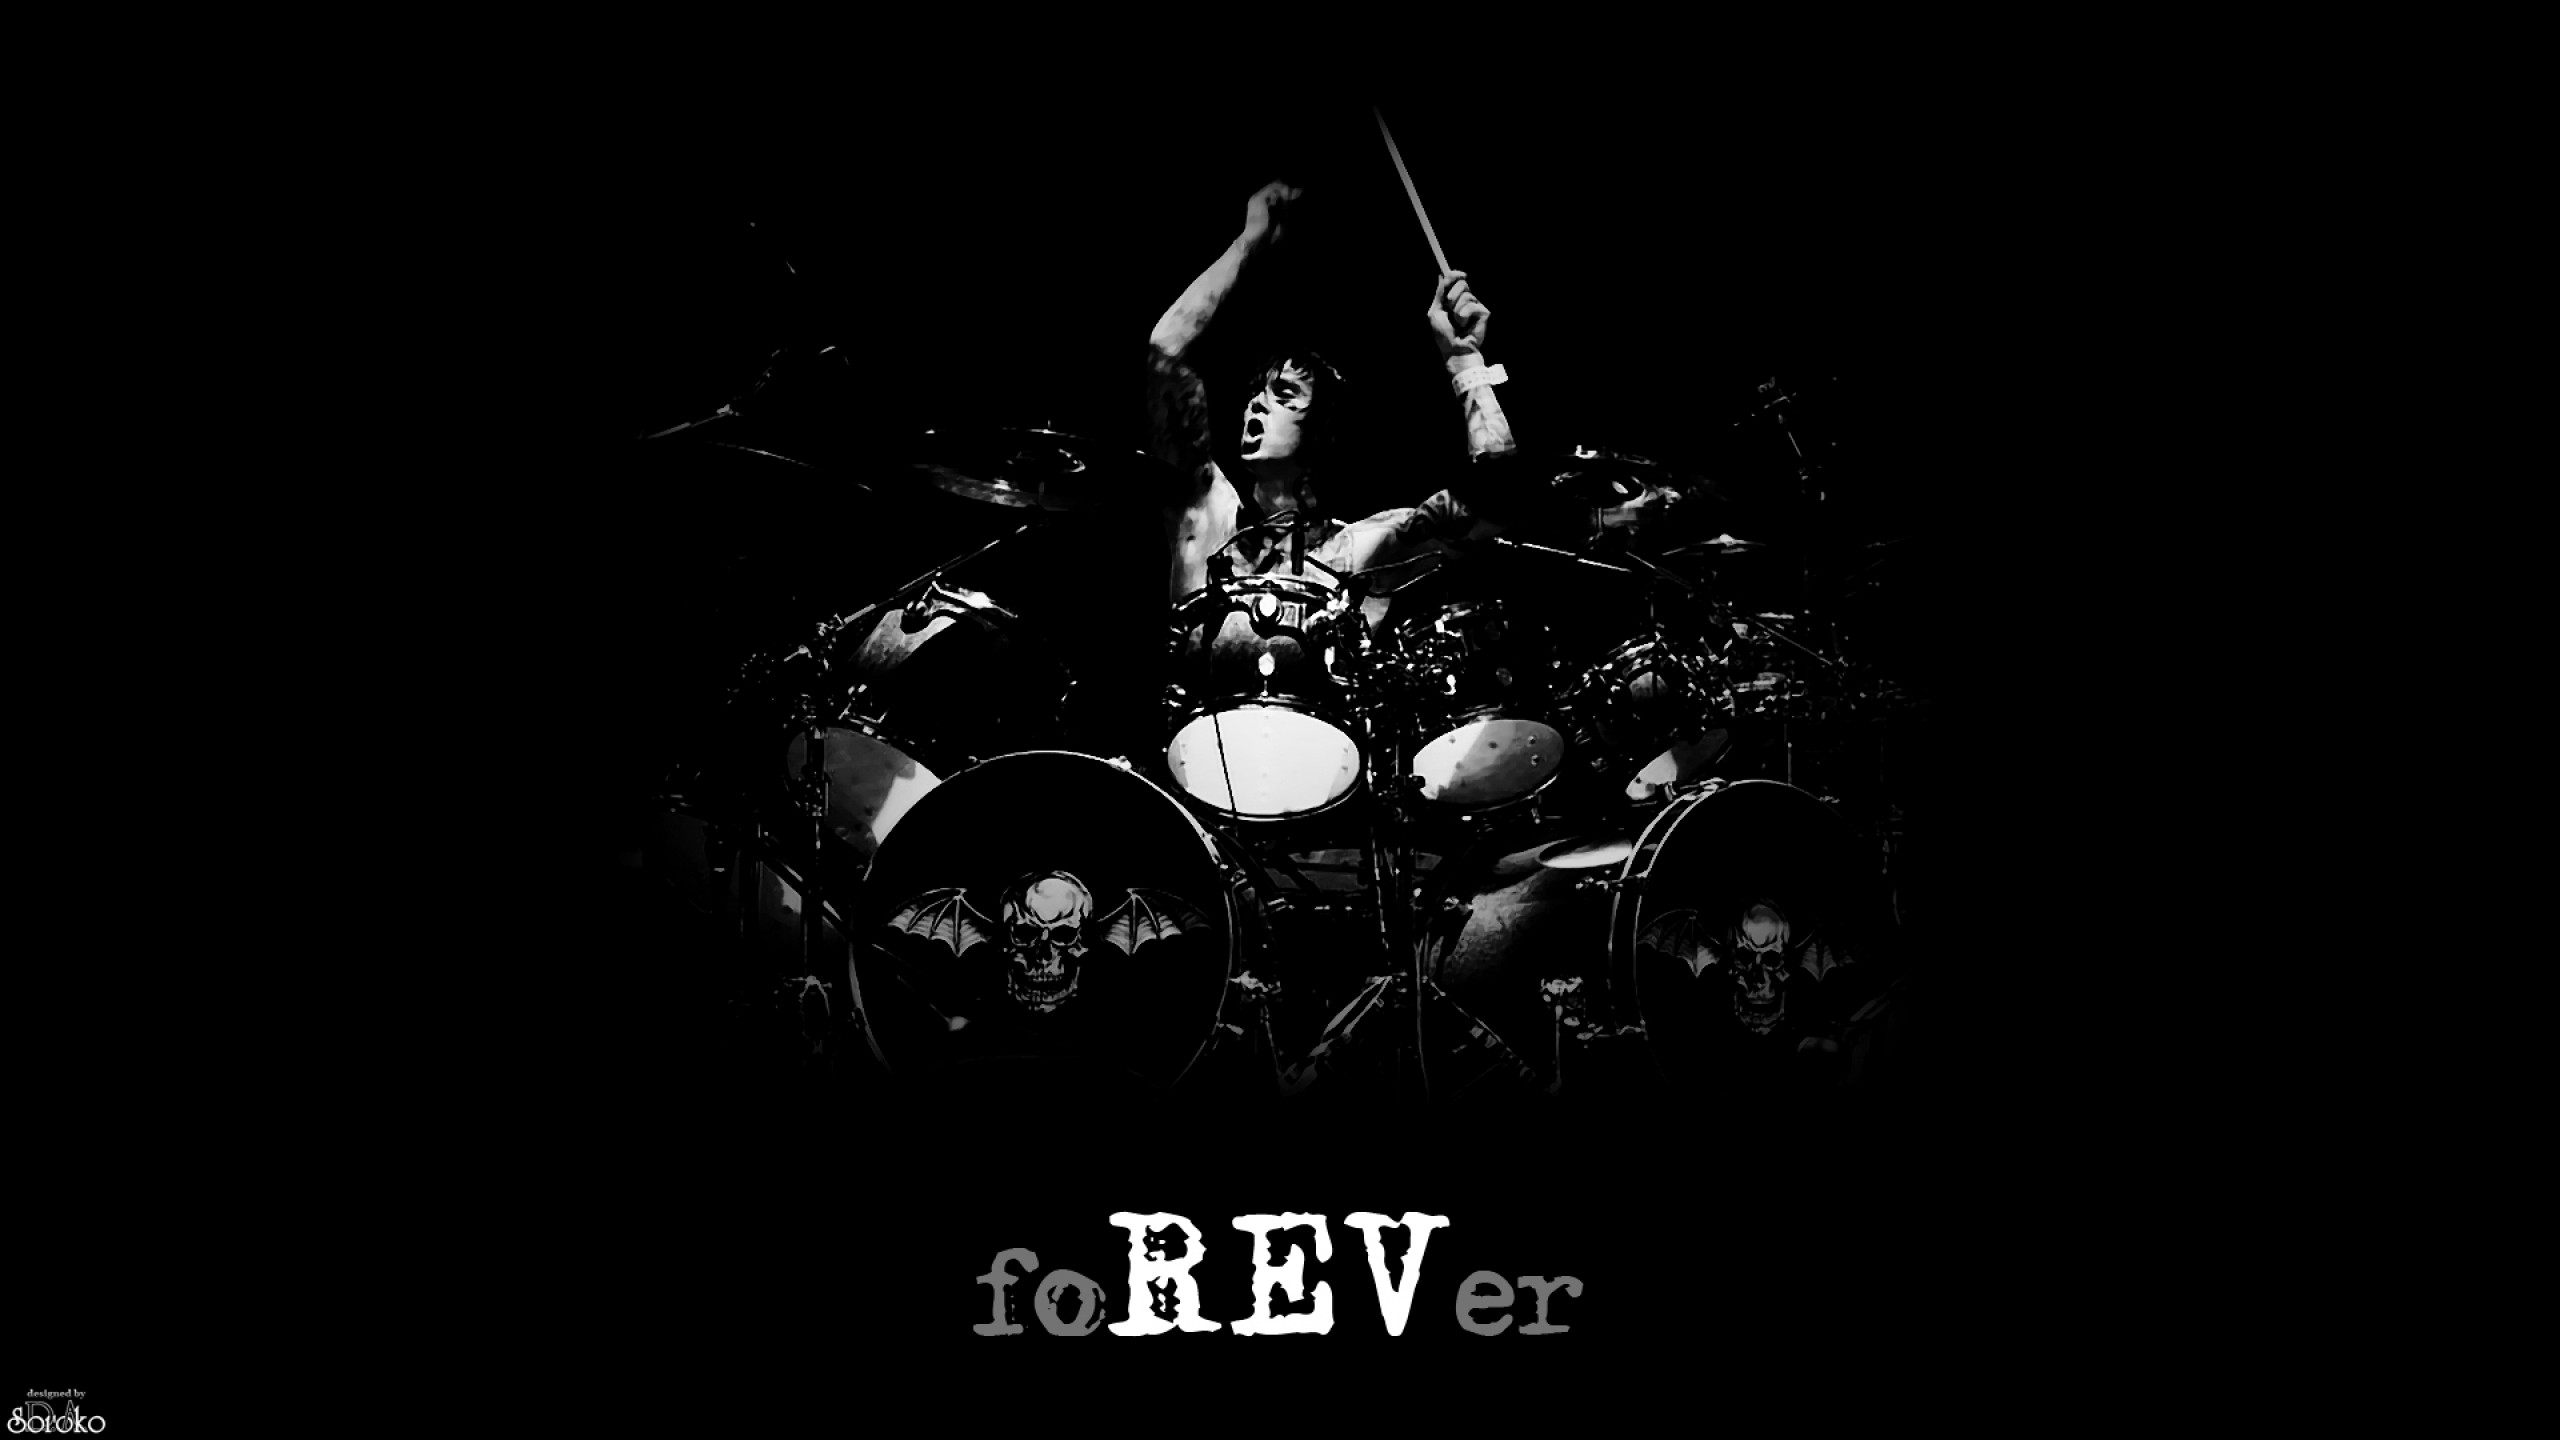 The Rev Wallpaper 64 images 2560x1440